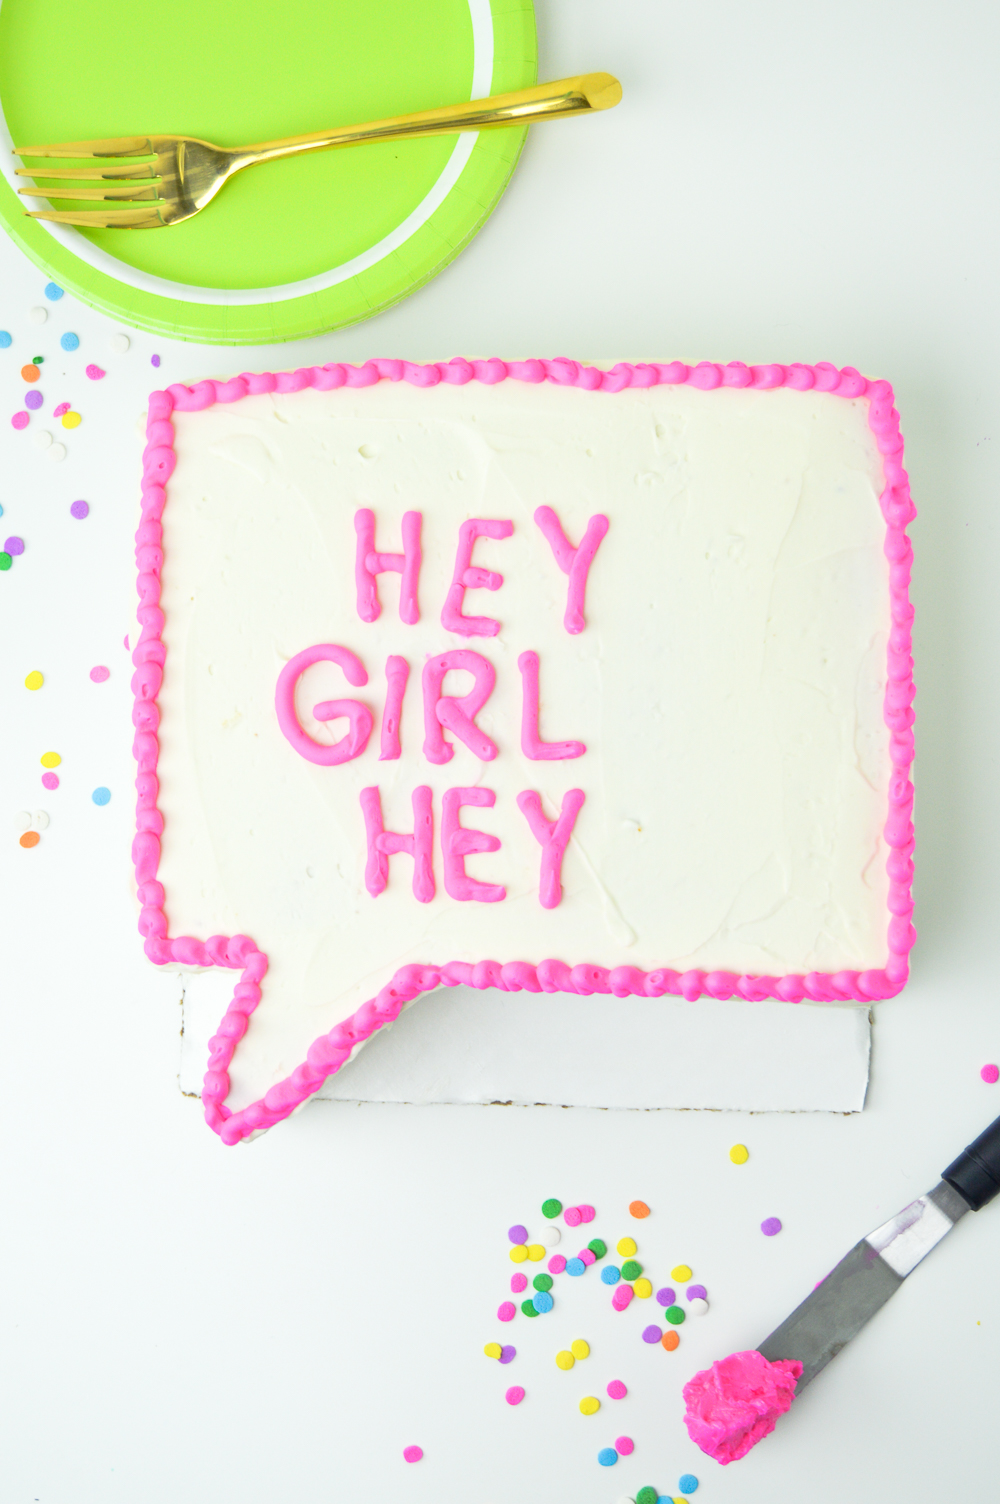 How to Make a Quote Bubble Cake